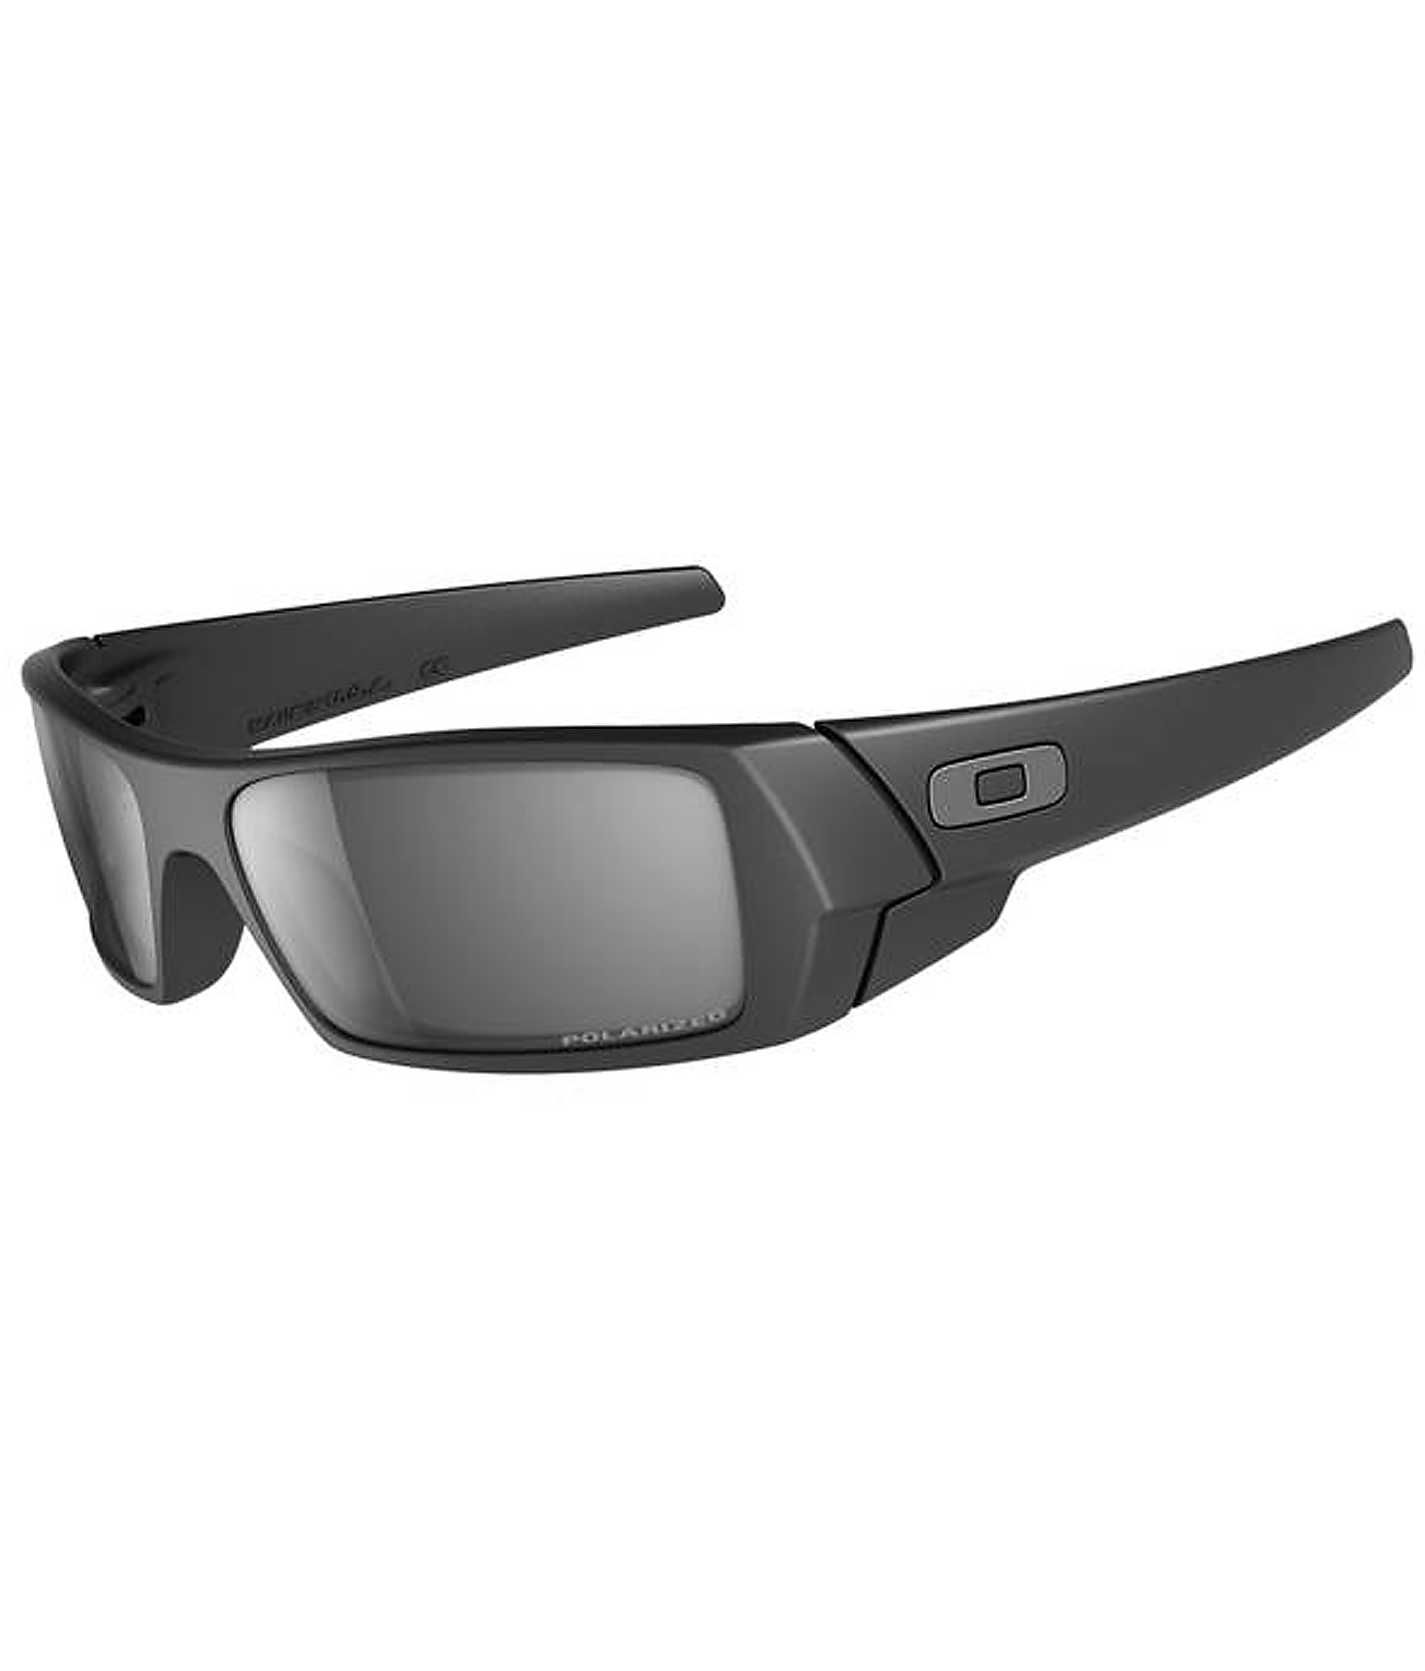 9f6c644078f Oakley Gascan Sunglasses - Mens Accessories